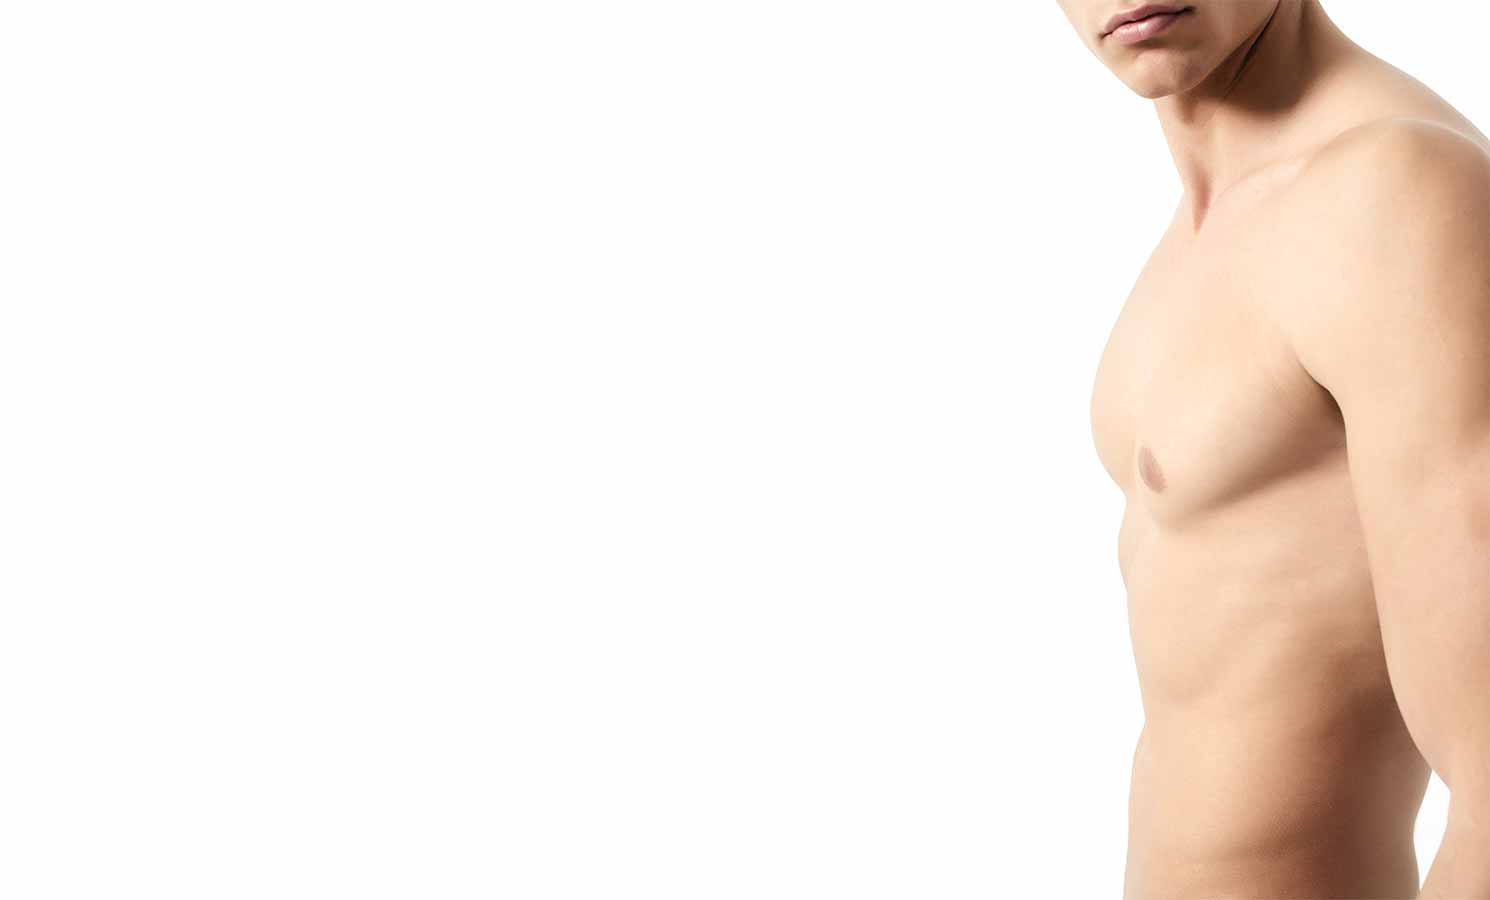 Berman Cosmetic Surgery - Who is a good candidate for a male breast reduction